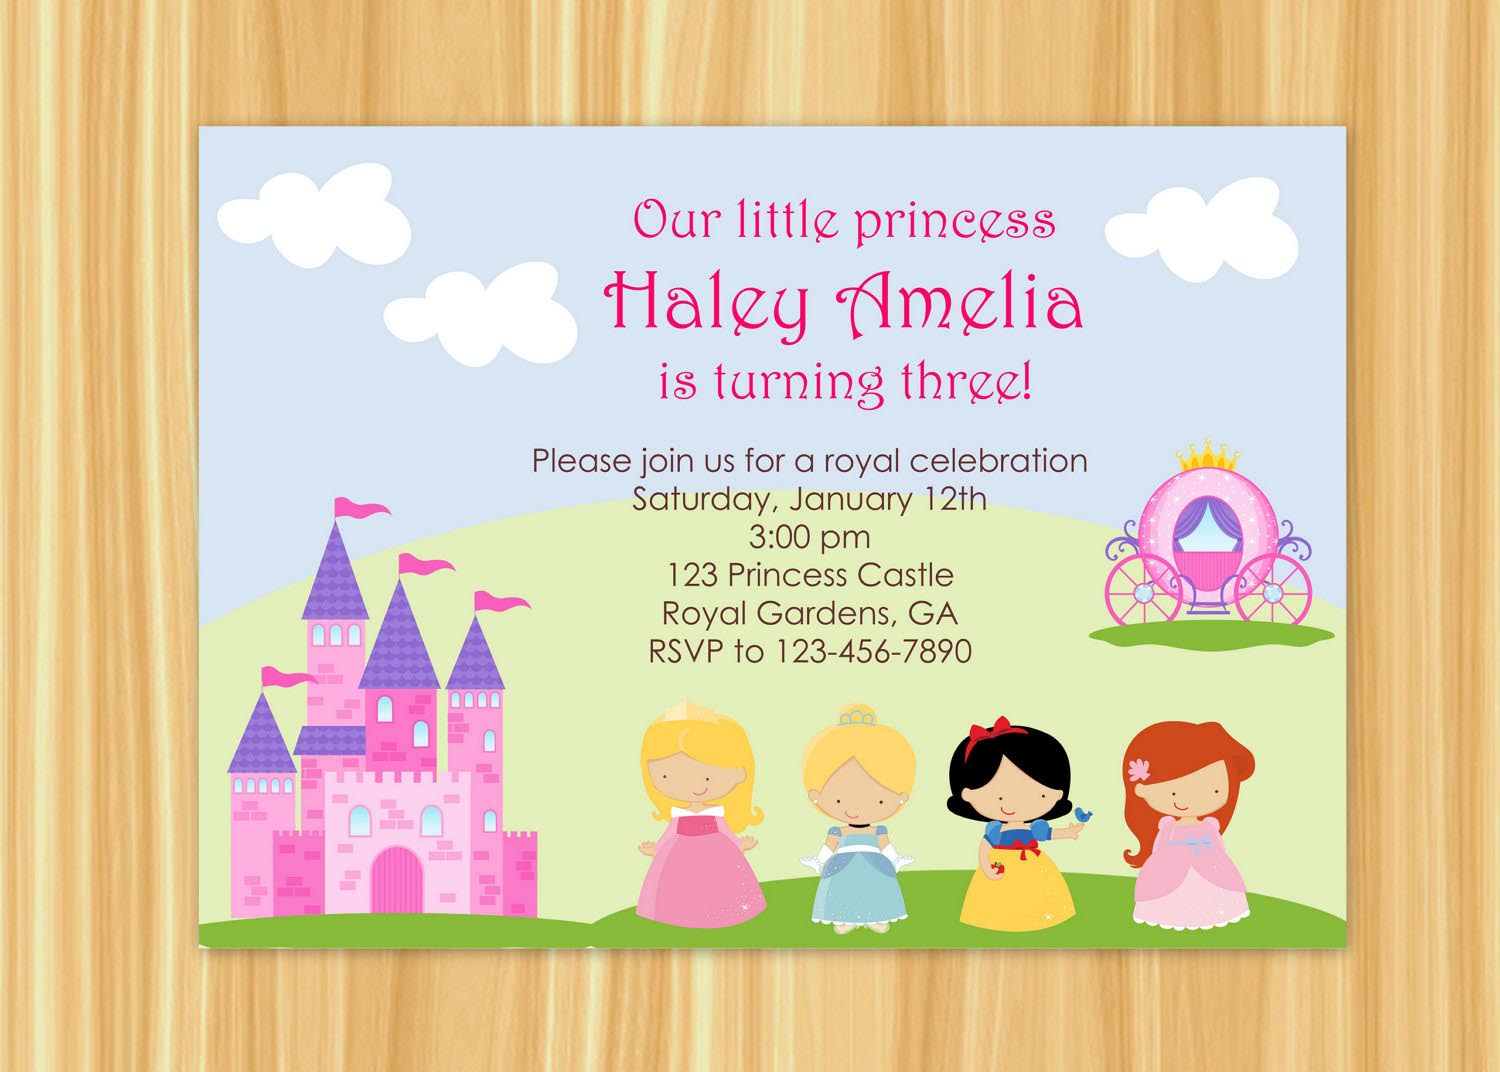 Princess Jasmine Party Invitations – Spa Party Invitation Wording